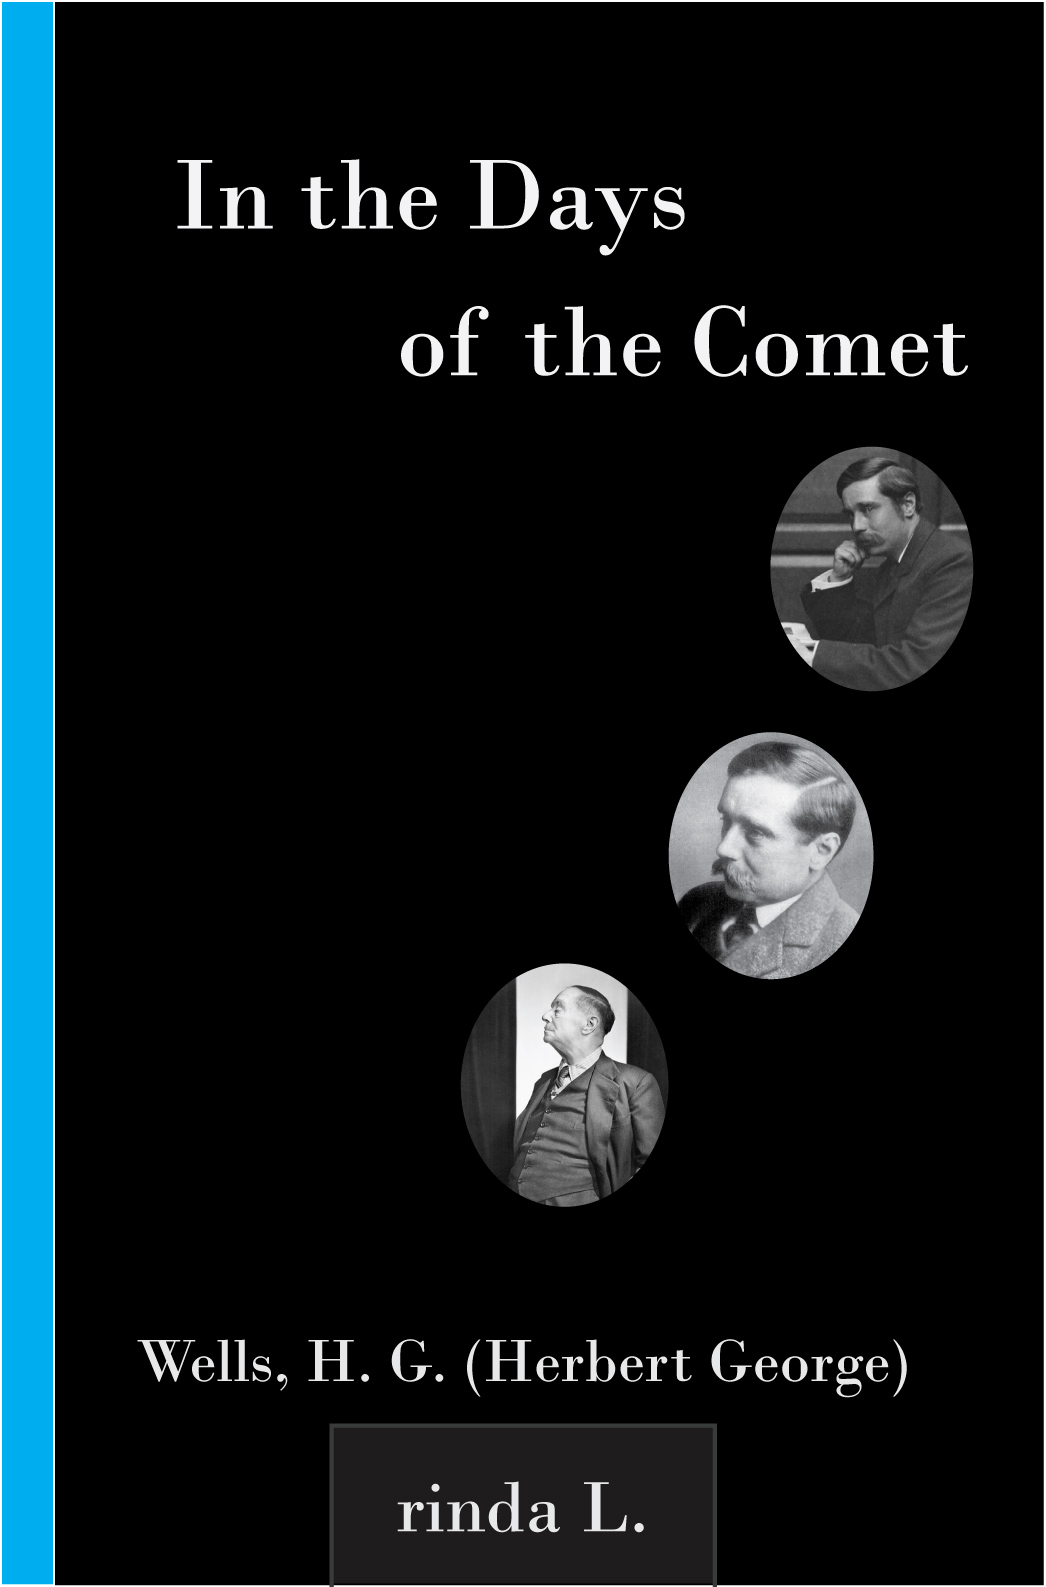 In the Days of the Comet By: Wells H. G. (Herbert George)